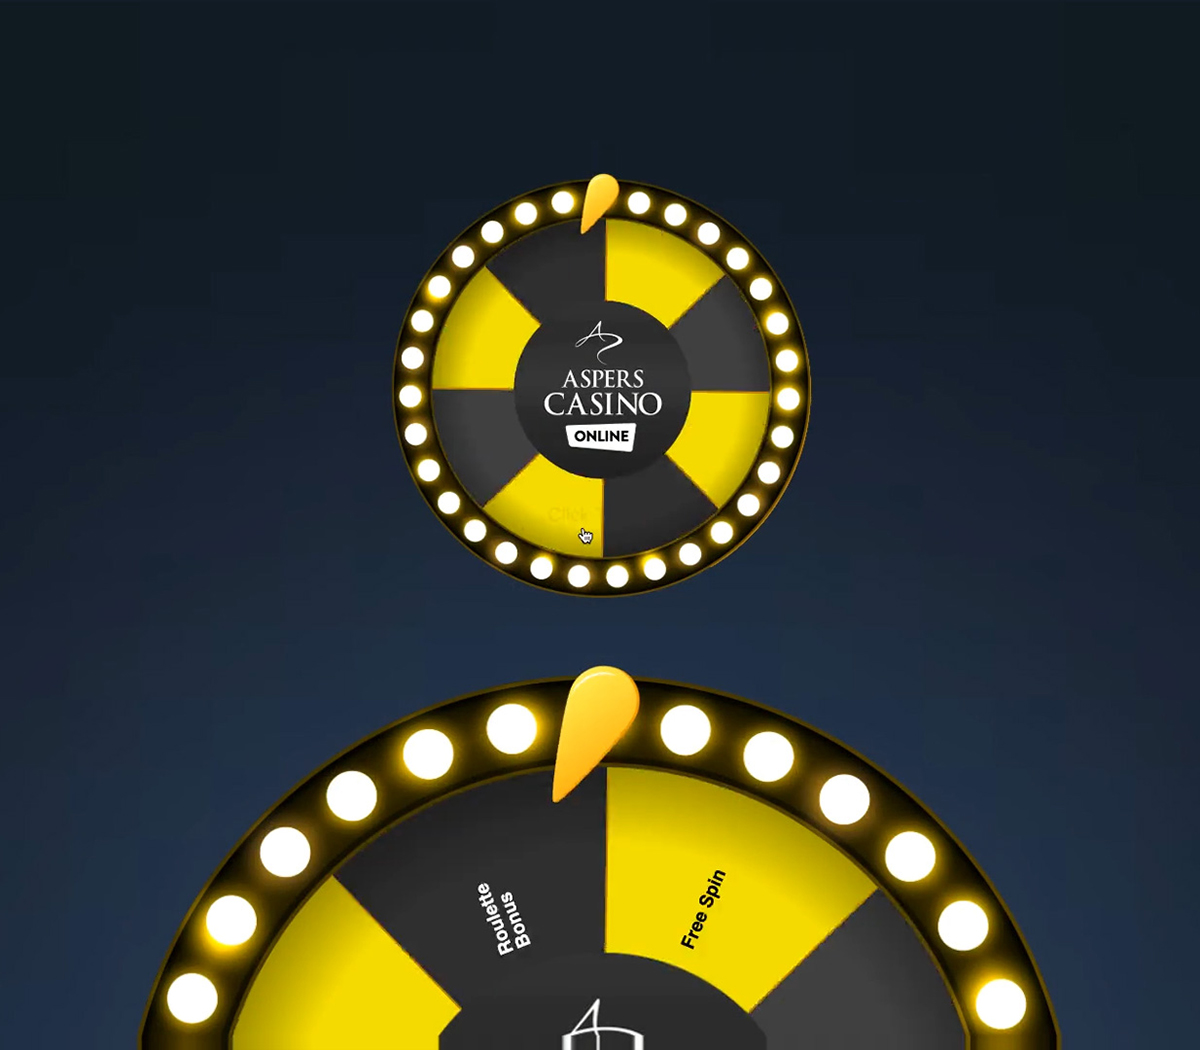 Aspers Casino Online Wheel of Fortune